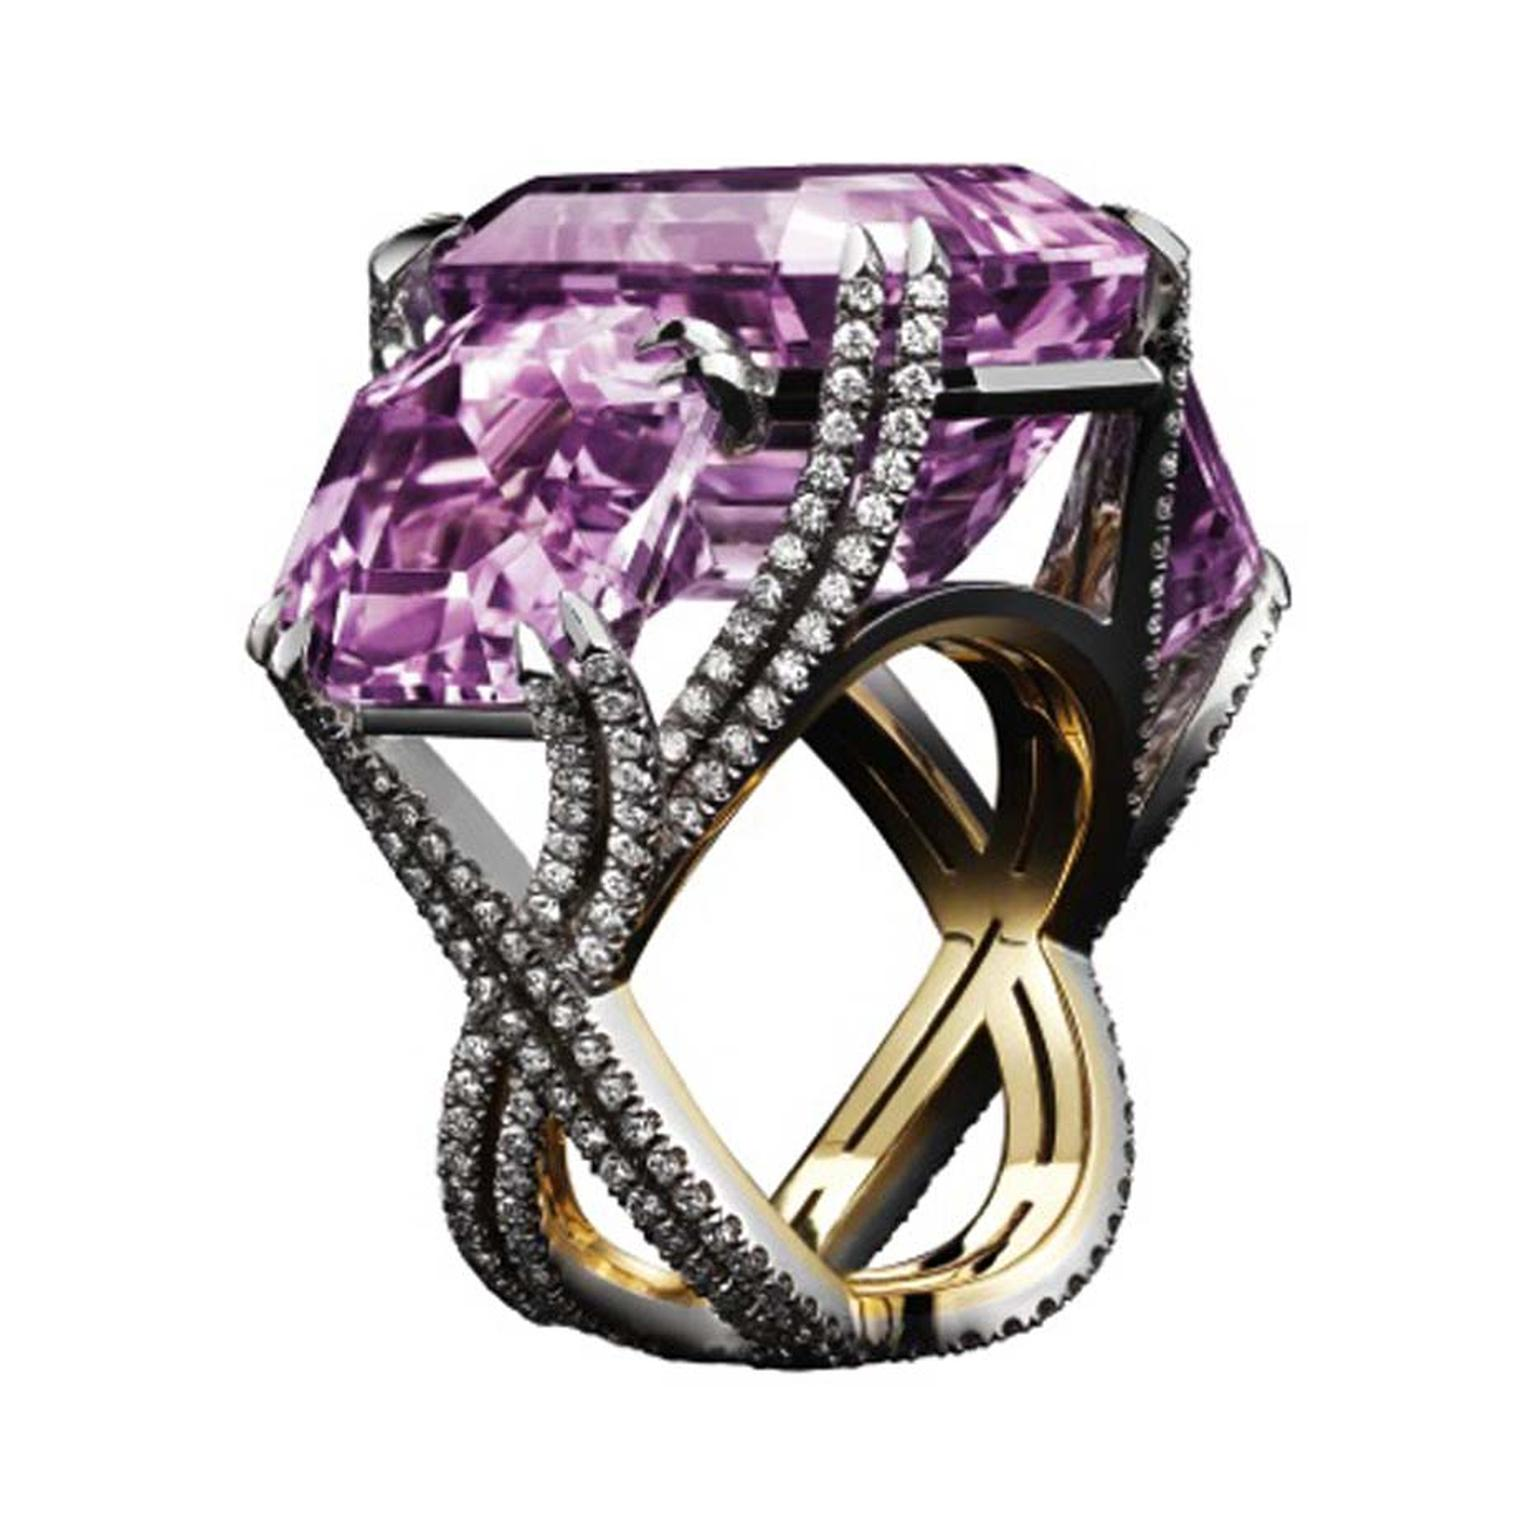 Alexandra Mor three stone kunzite and diamond ring.